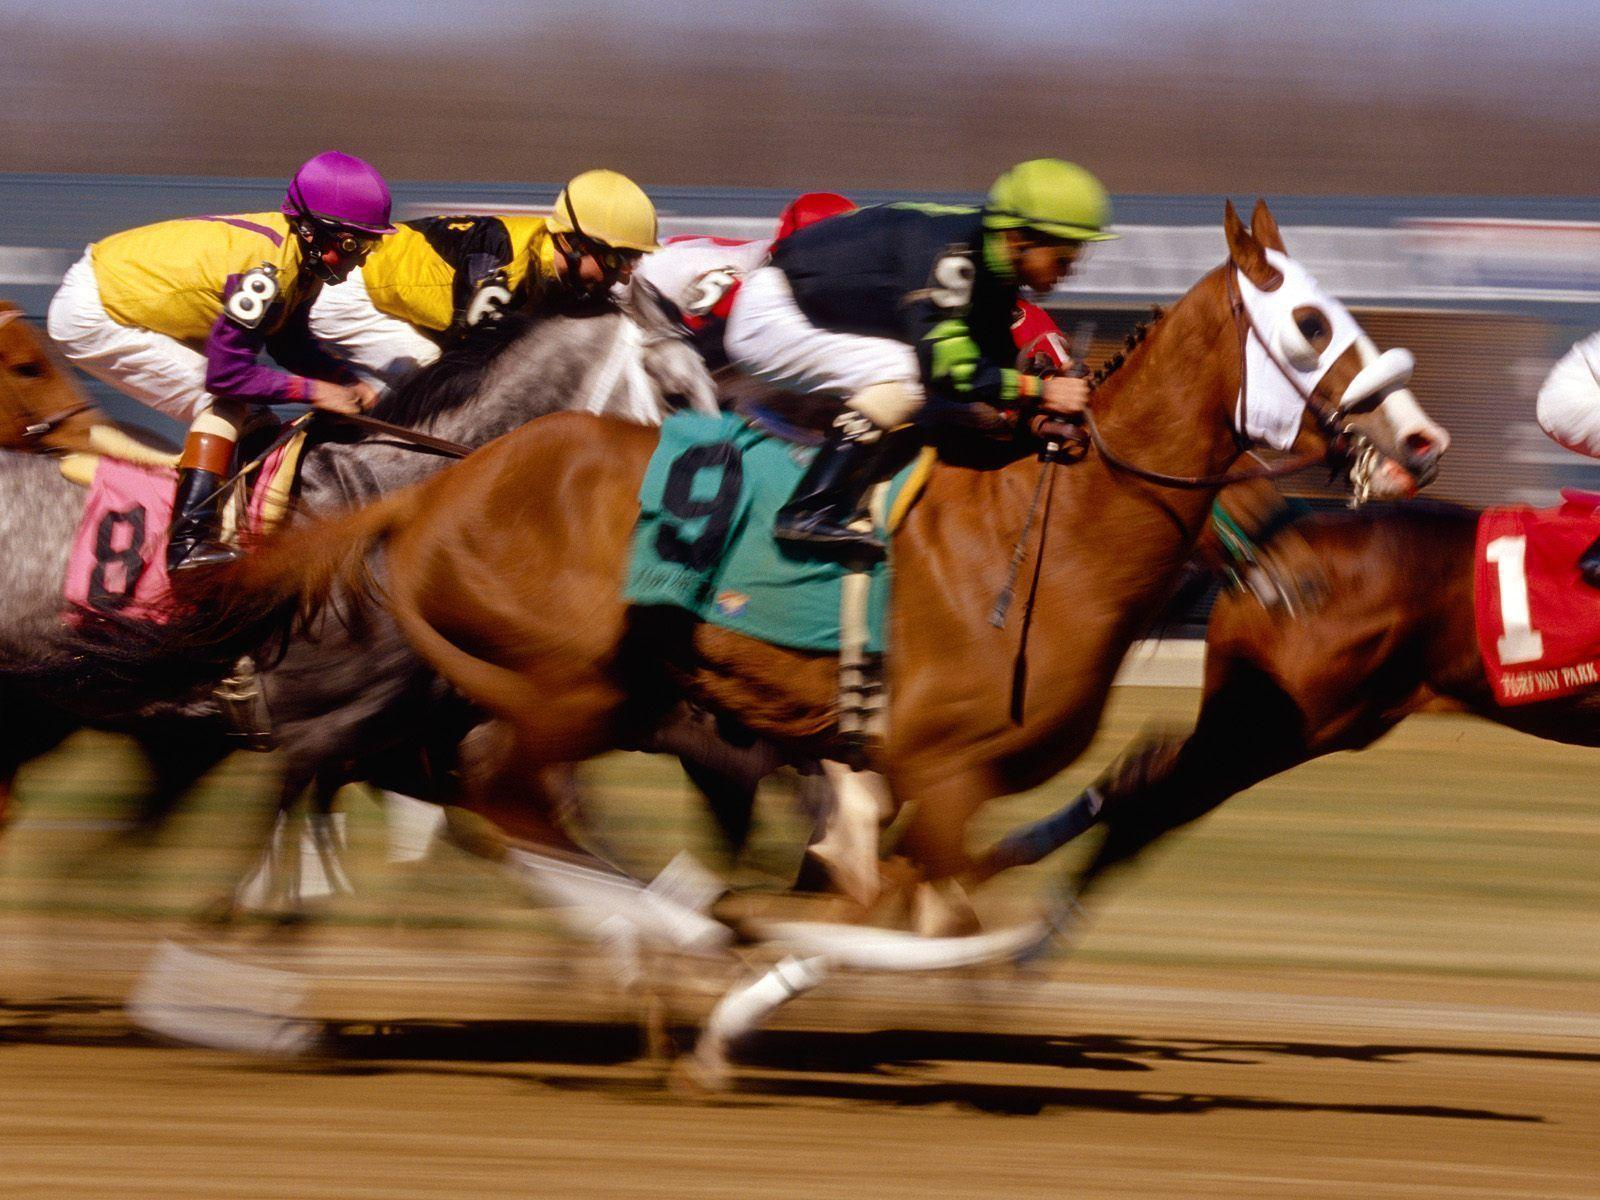 Animals For > Horse Racing Wallpapers Screensaver